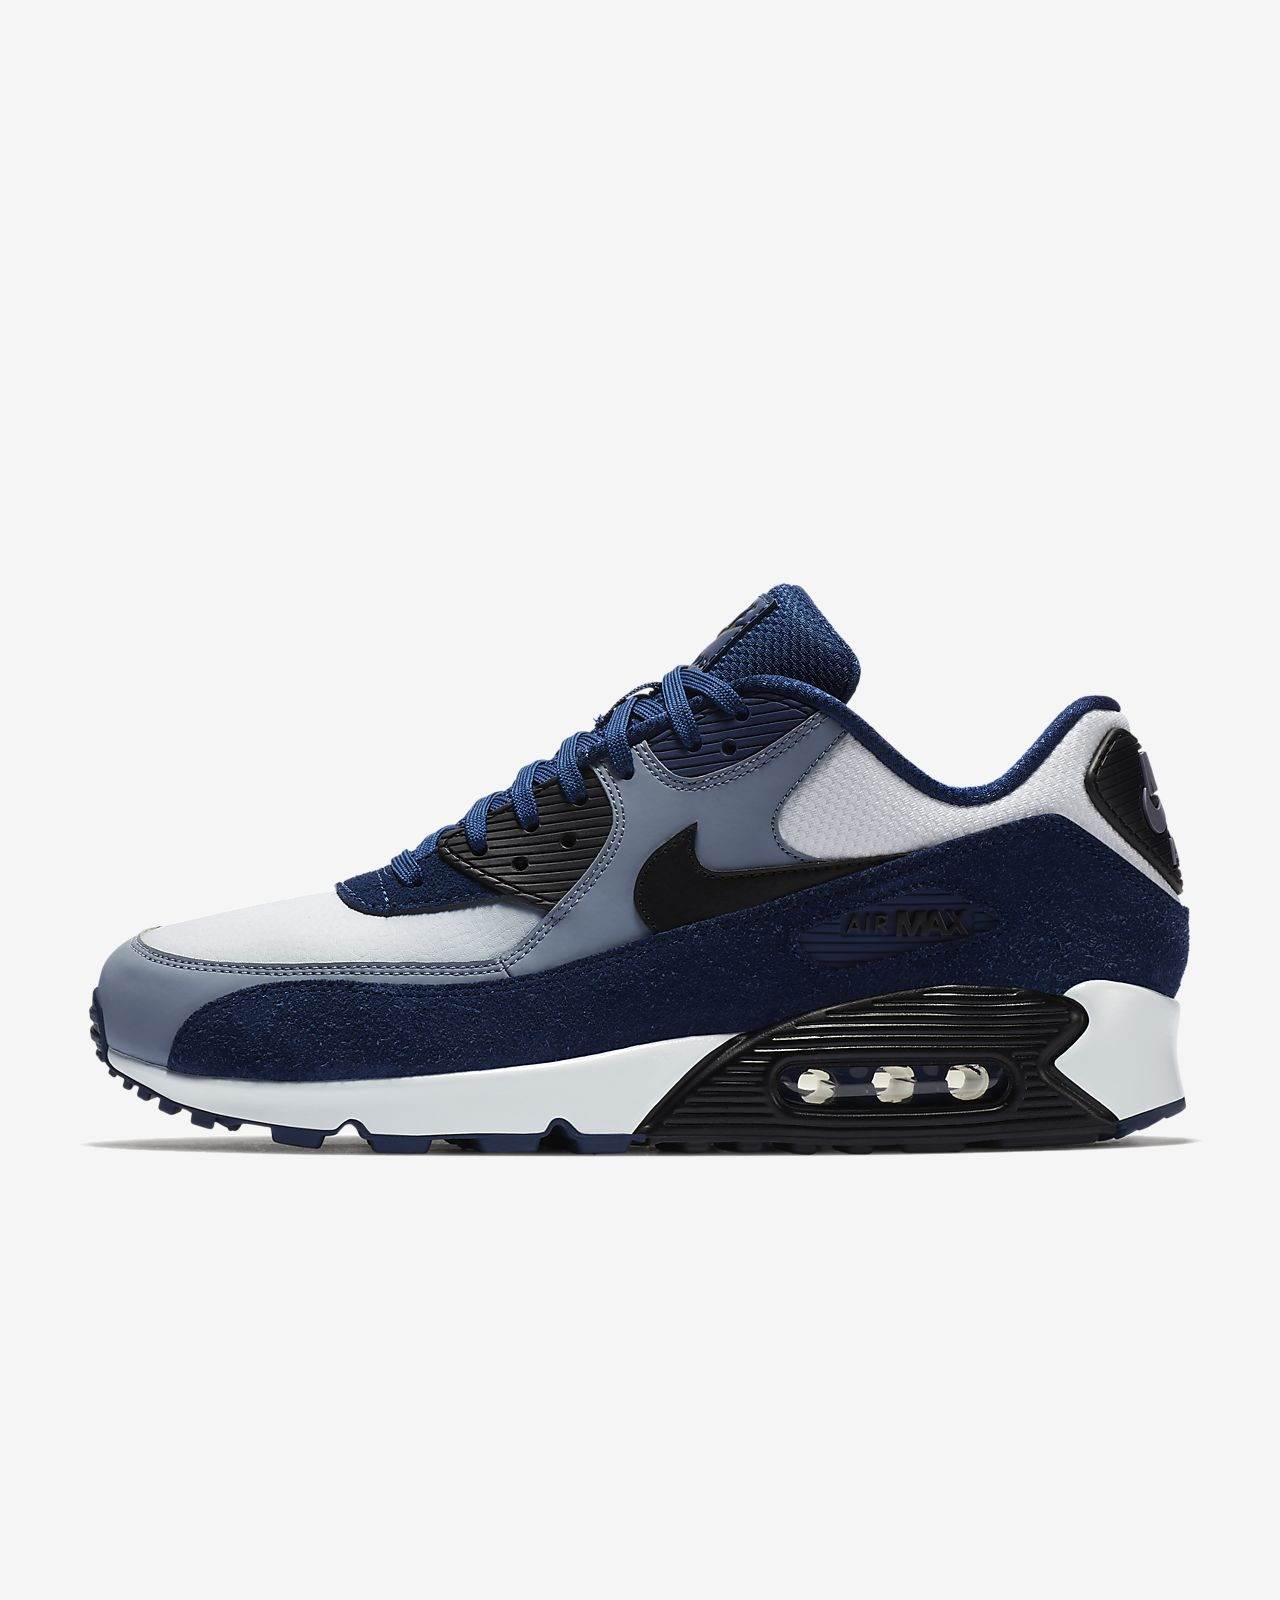 new arrival 154cf f1483 ... australia nike air max 90 leather mens shoe 0be1a f73a6